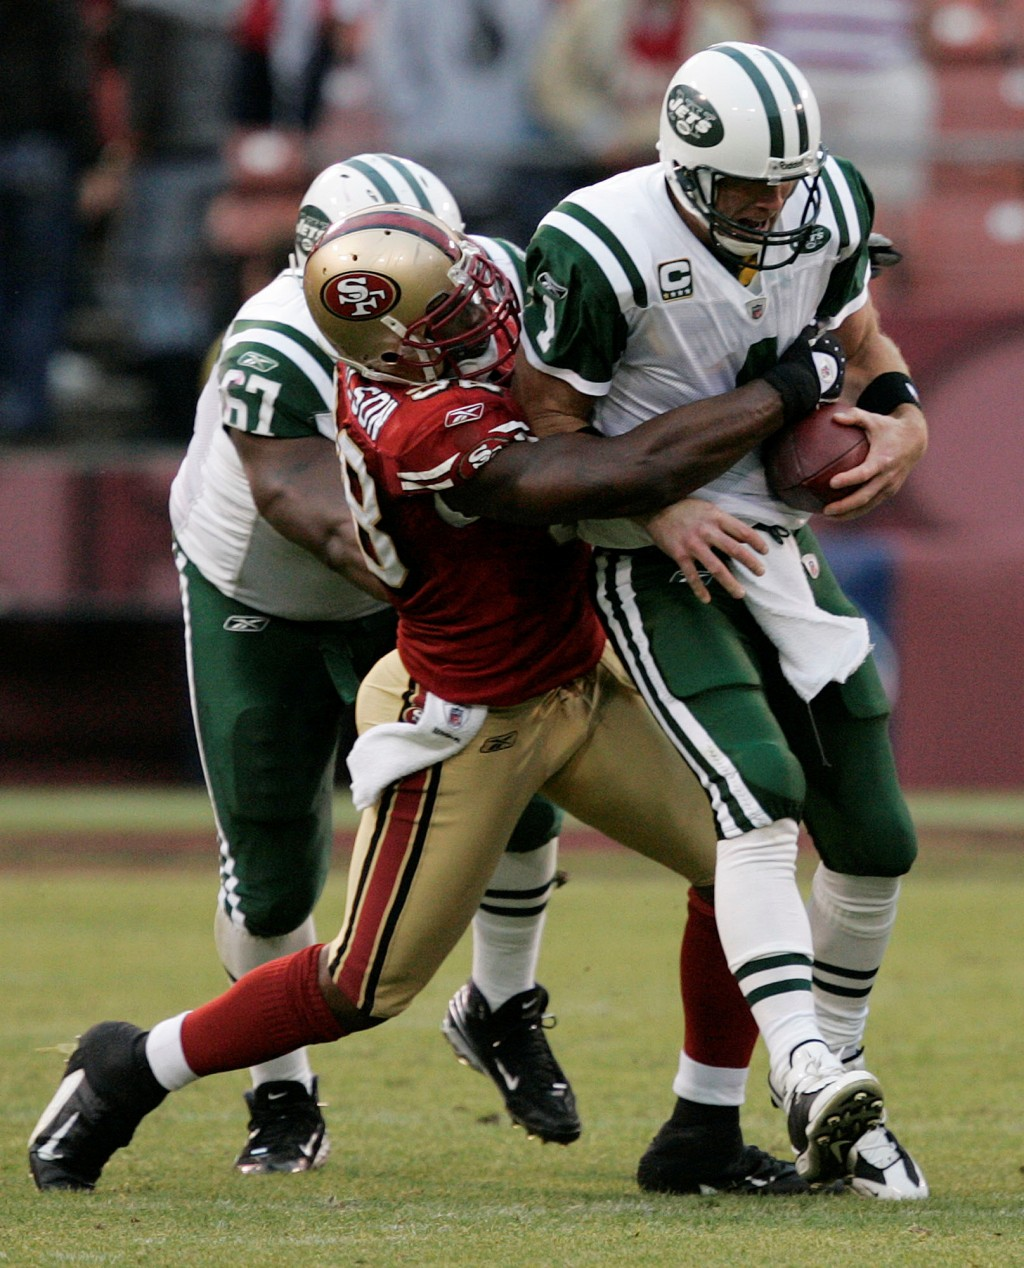 FILE - In this Sunday, Dec. 7, 2008, file photo, New York Jets quarterback Brett Favre is sacked by San Francisco 49ers linebacker Parys Haralson duri...